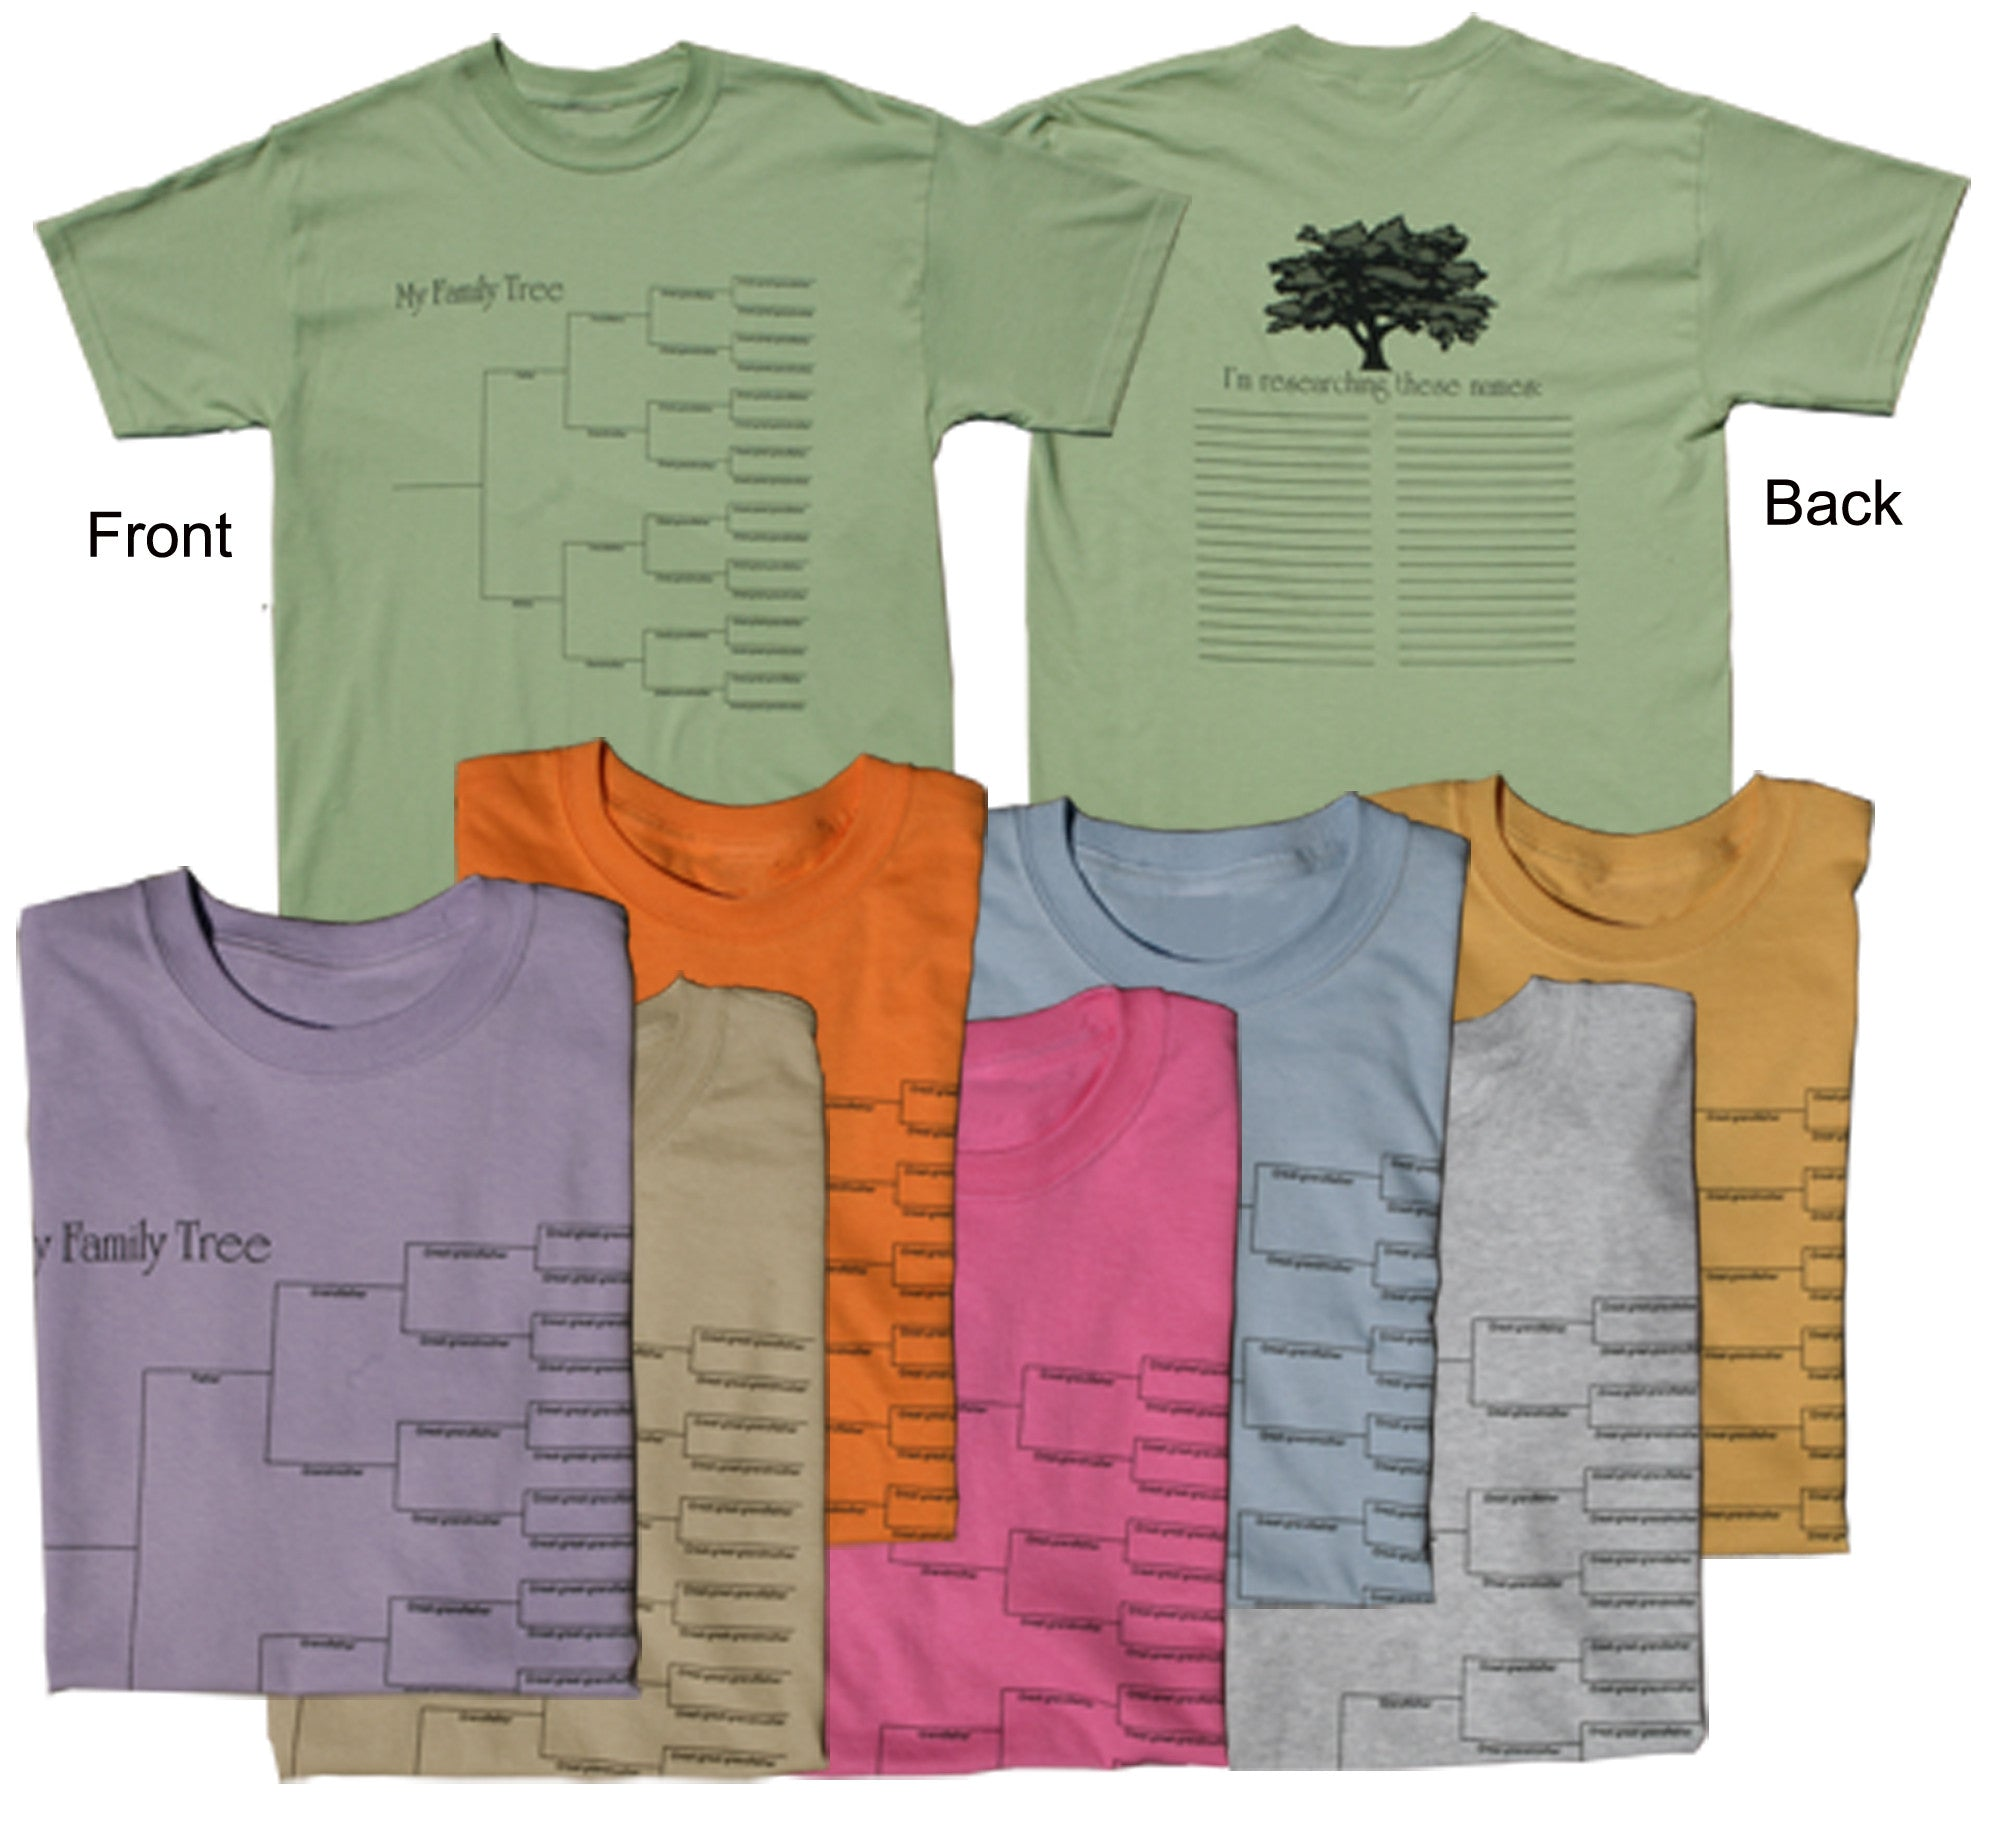 Pedigree & Surname List T-Shirt